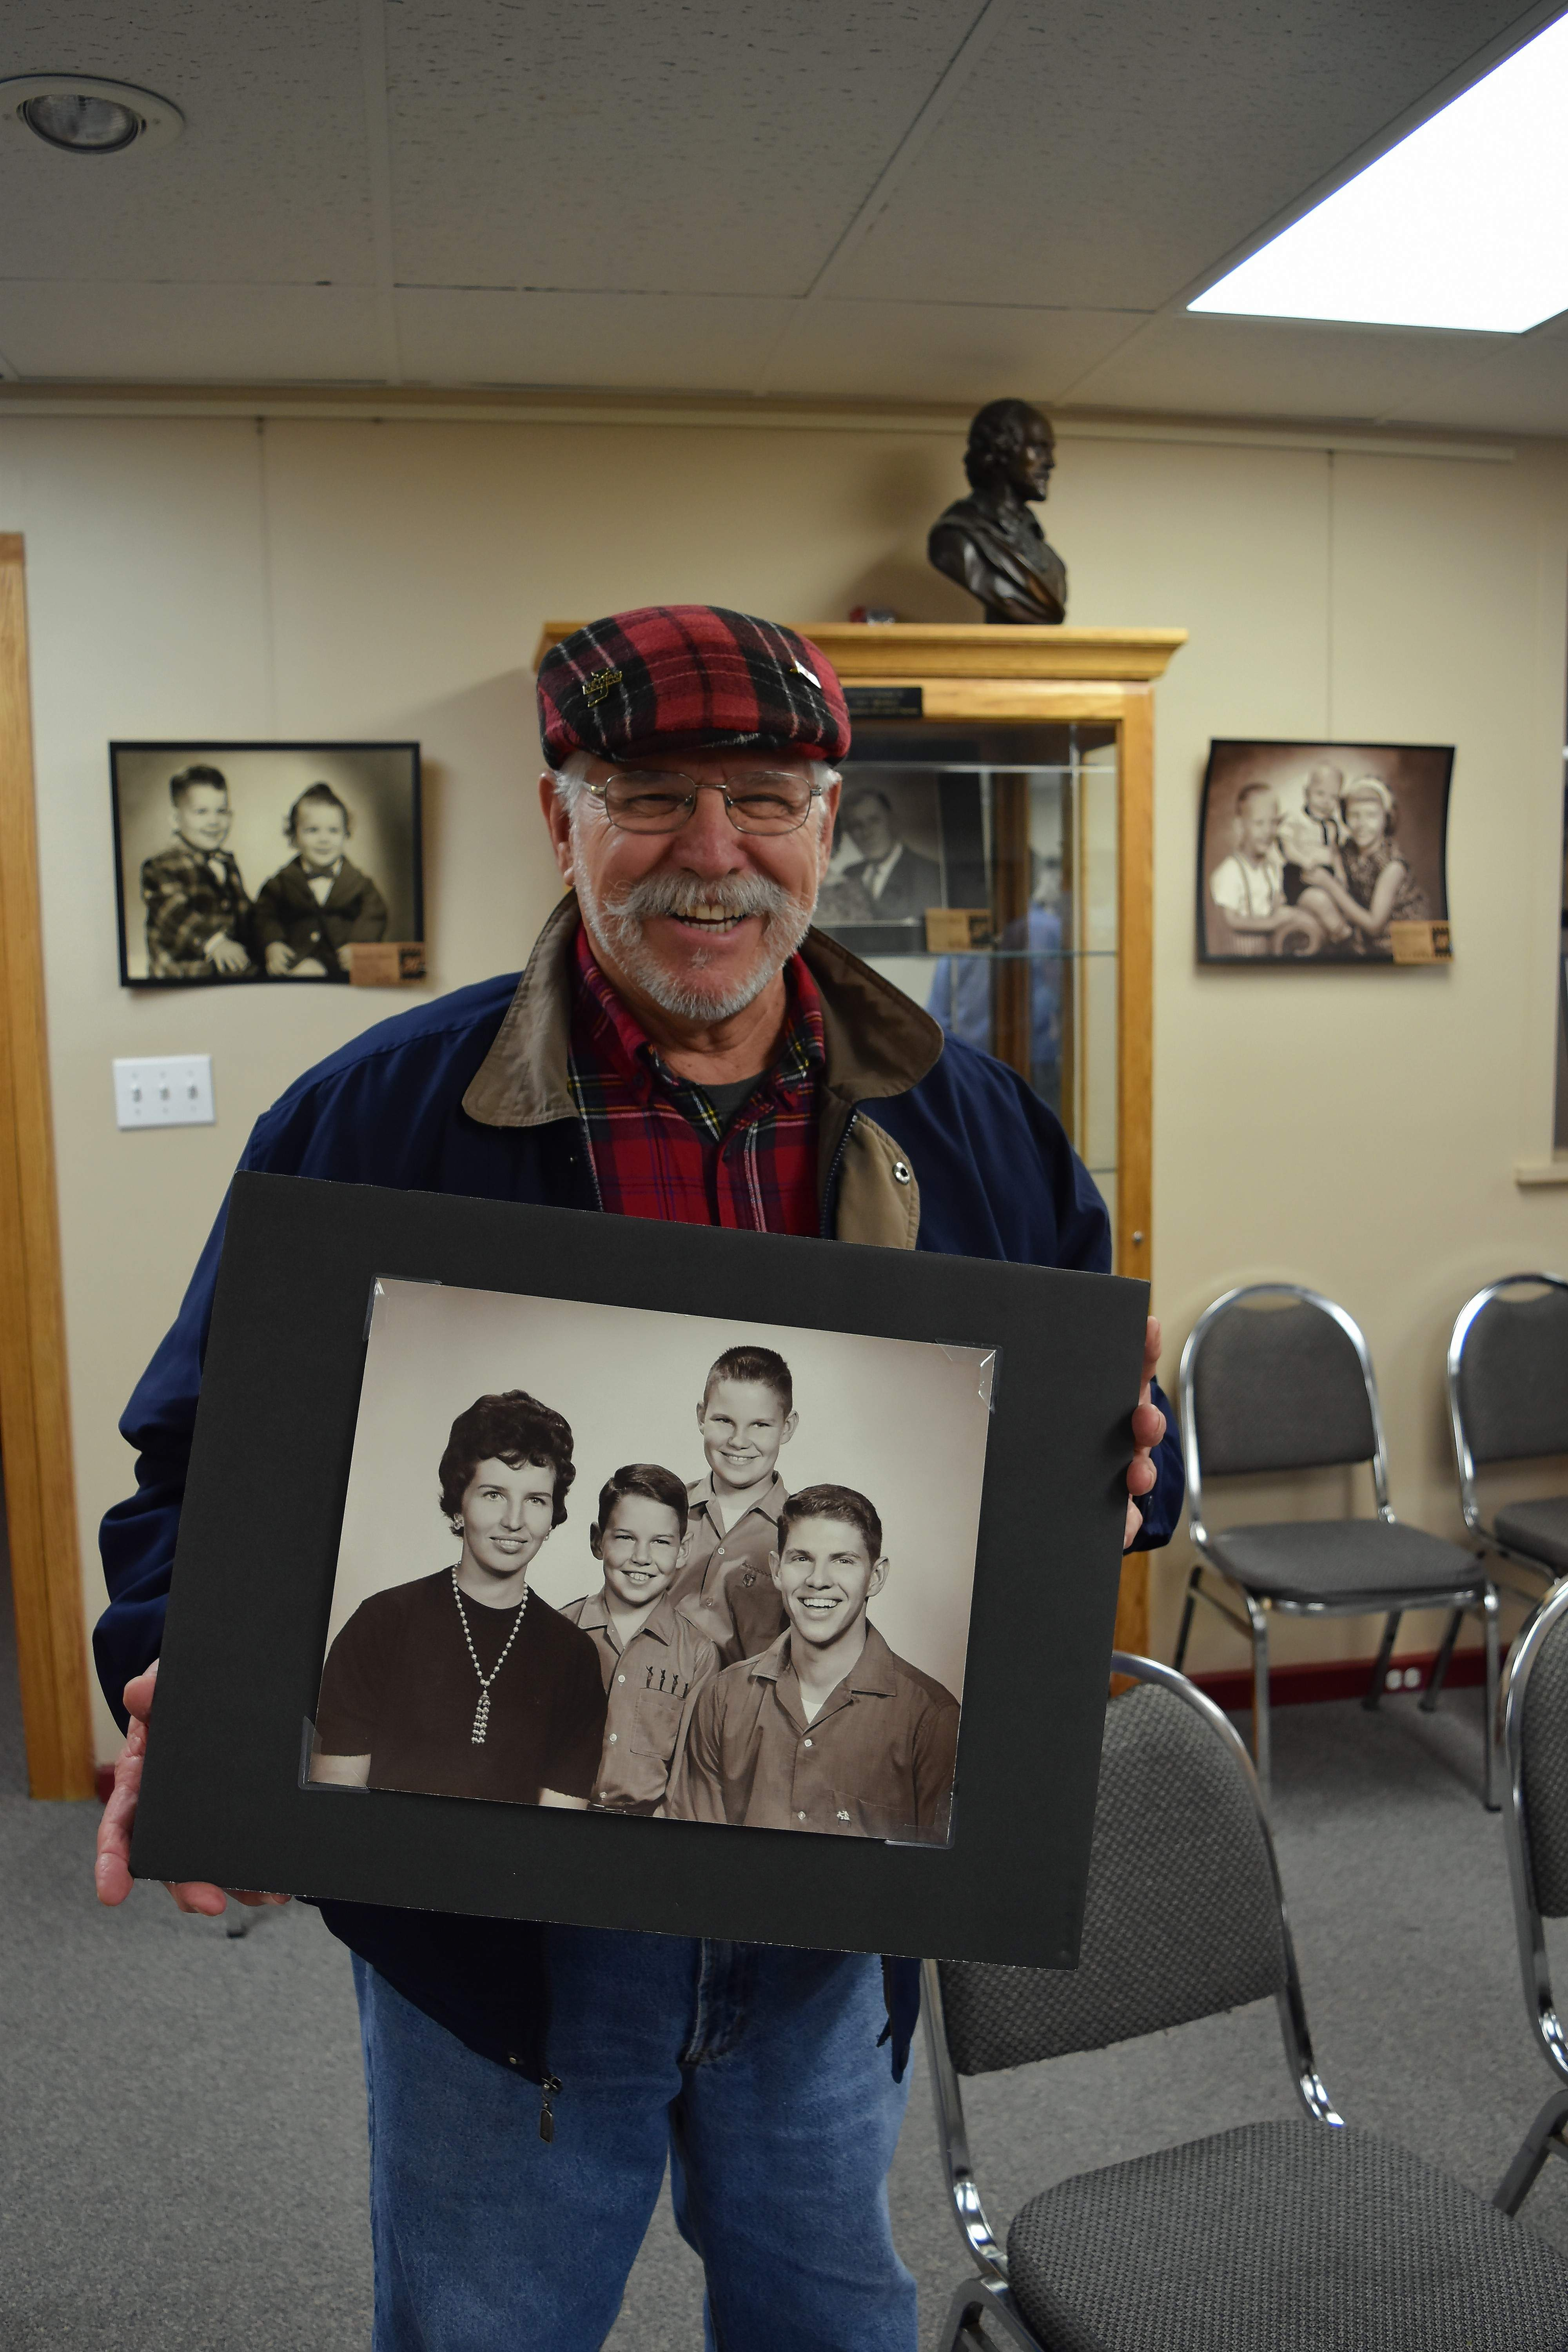 Jim Whyte of Eldorado holds a previously unidentified portrait of himself, on the right in the photo, and his three siblings made in 1960